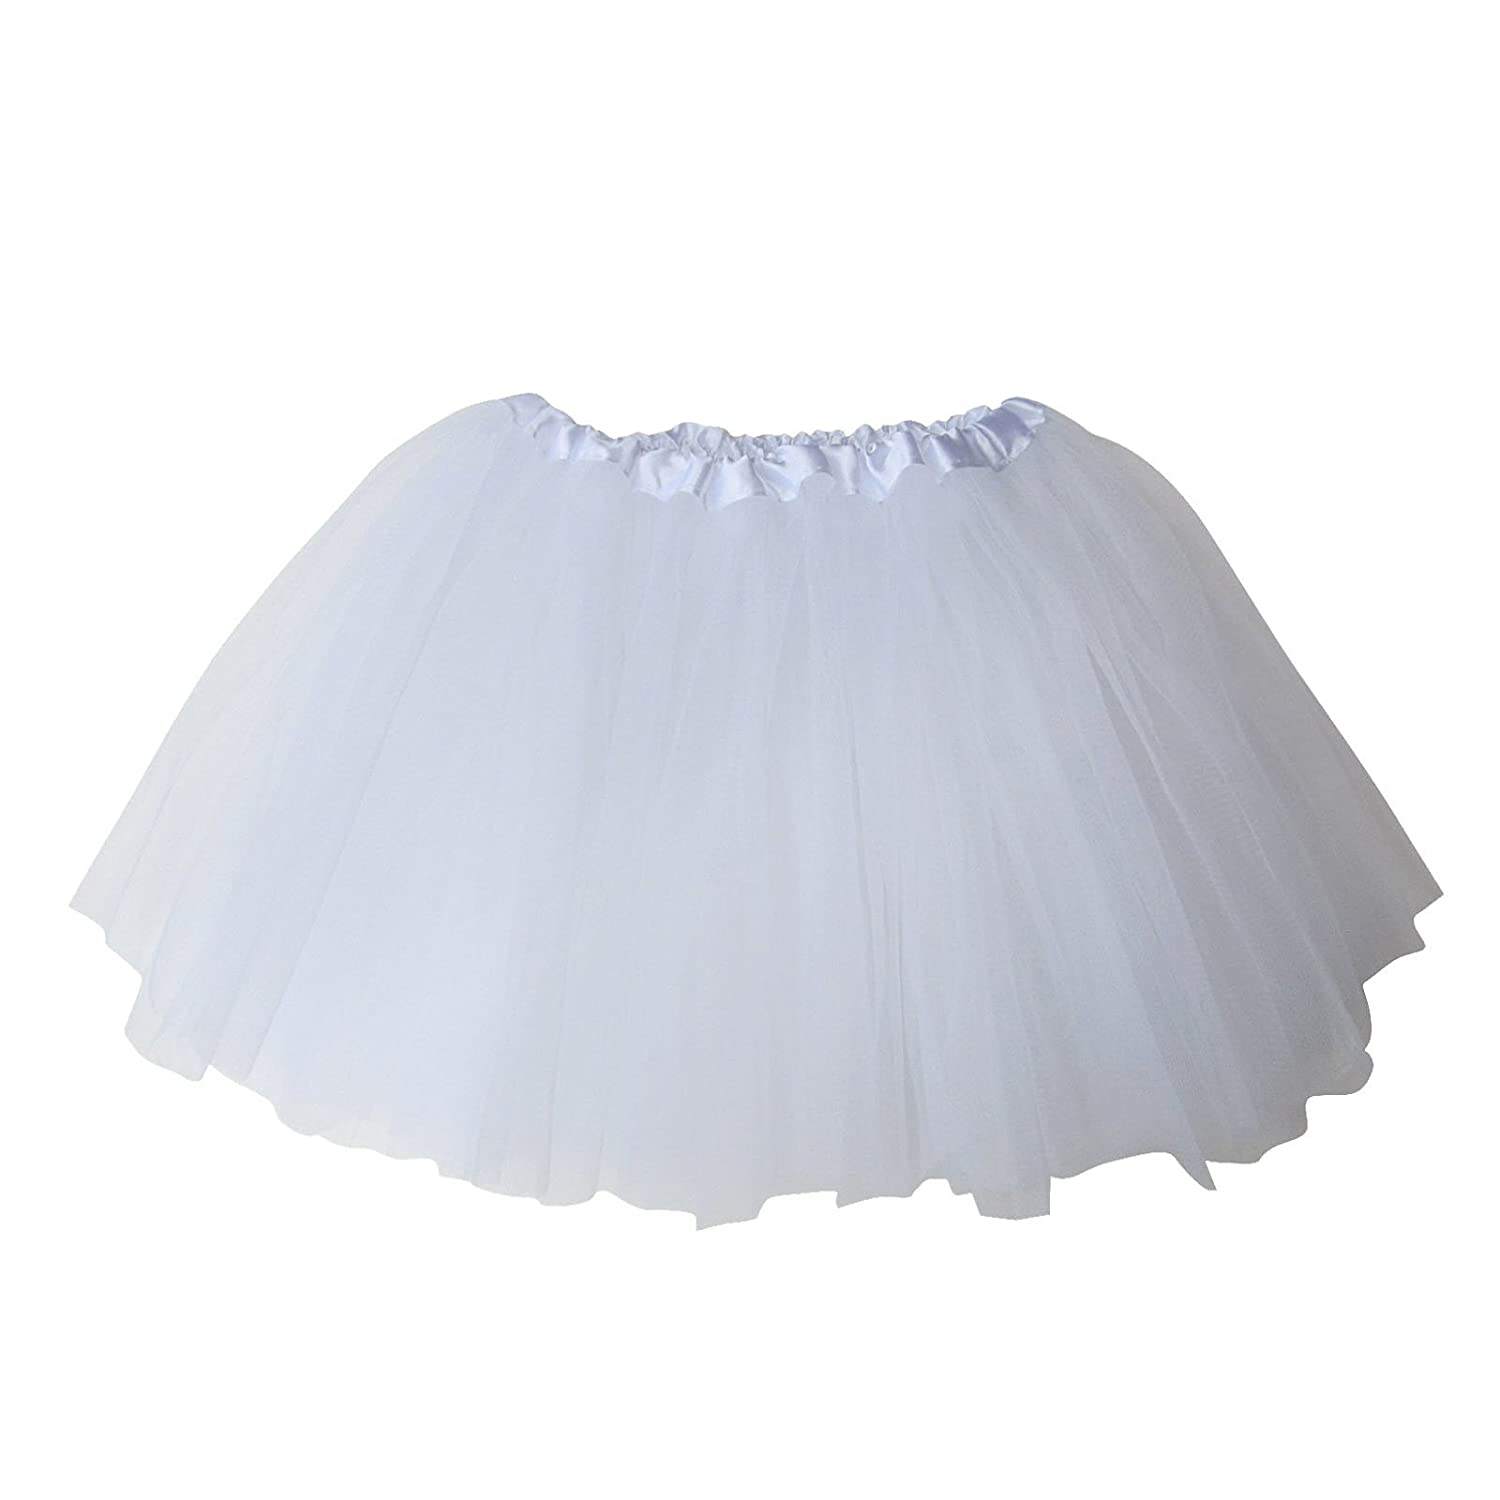 TraderPlus Adult Women's Classic Elastic, 3-Layered Tulle Tutu Skirt Ballerina Running Party Skirt